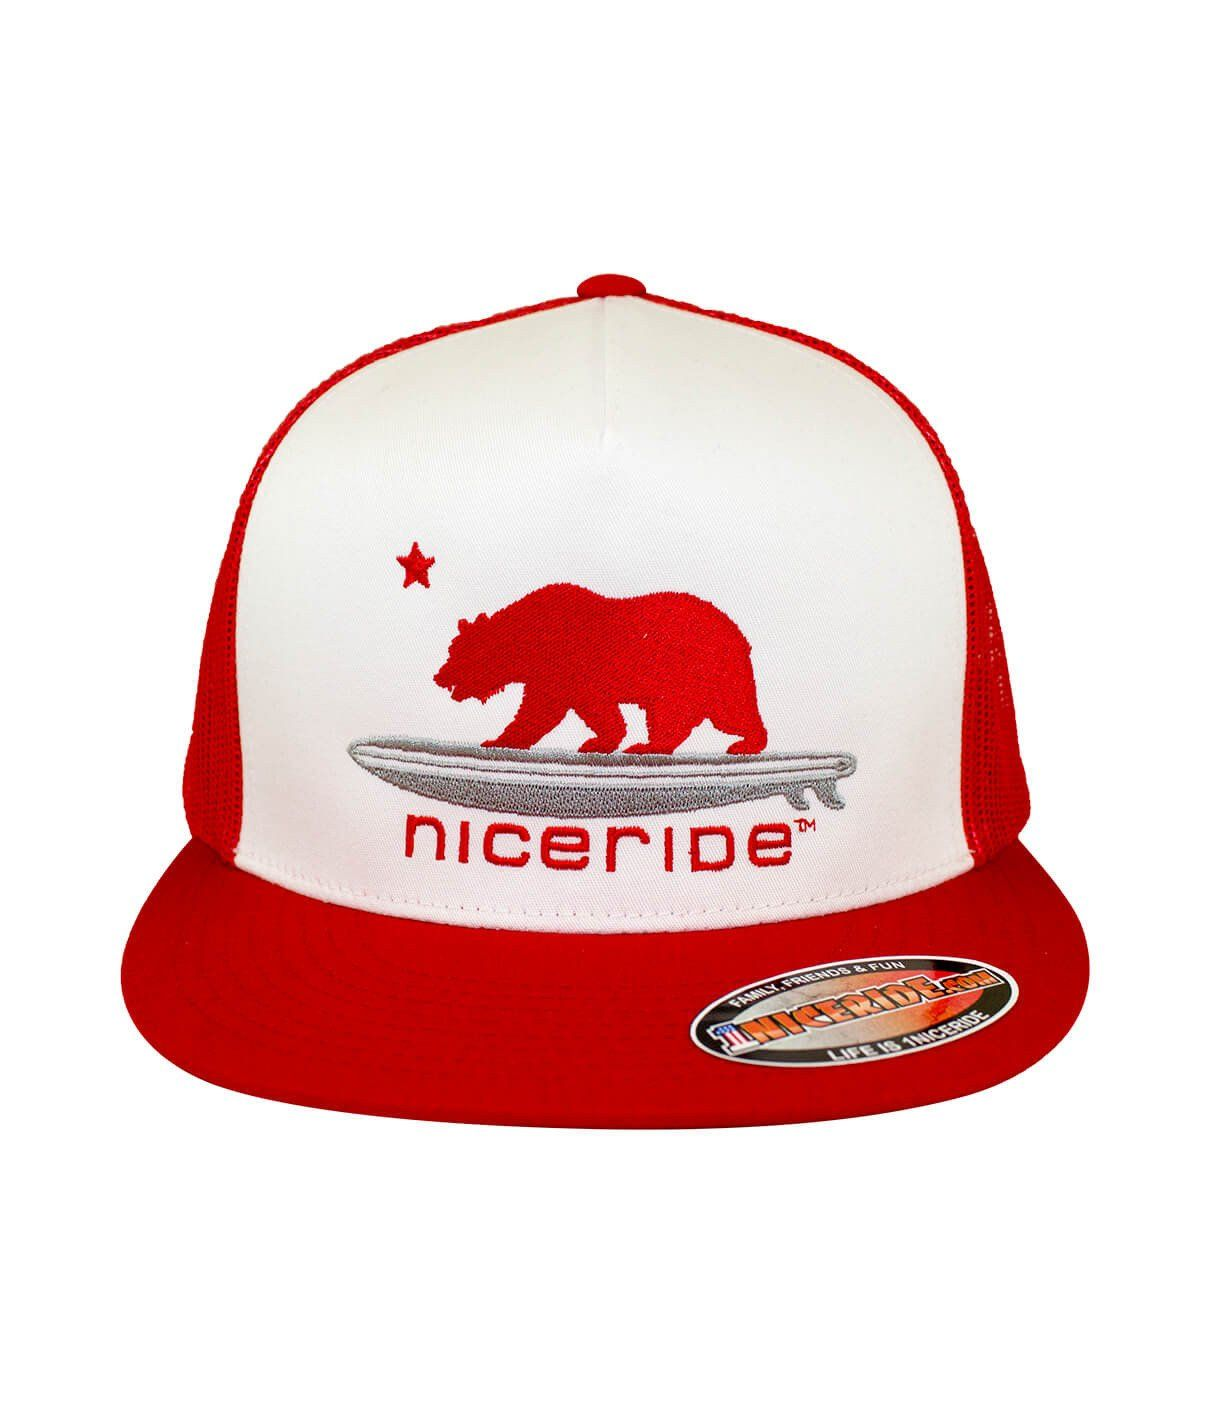 7c6aa720244 6006 Classic Snapback Trucker Hat with NICERIDE s